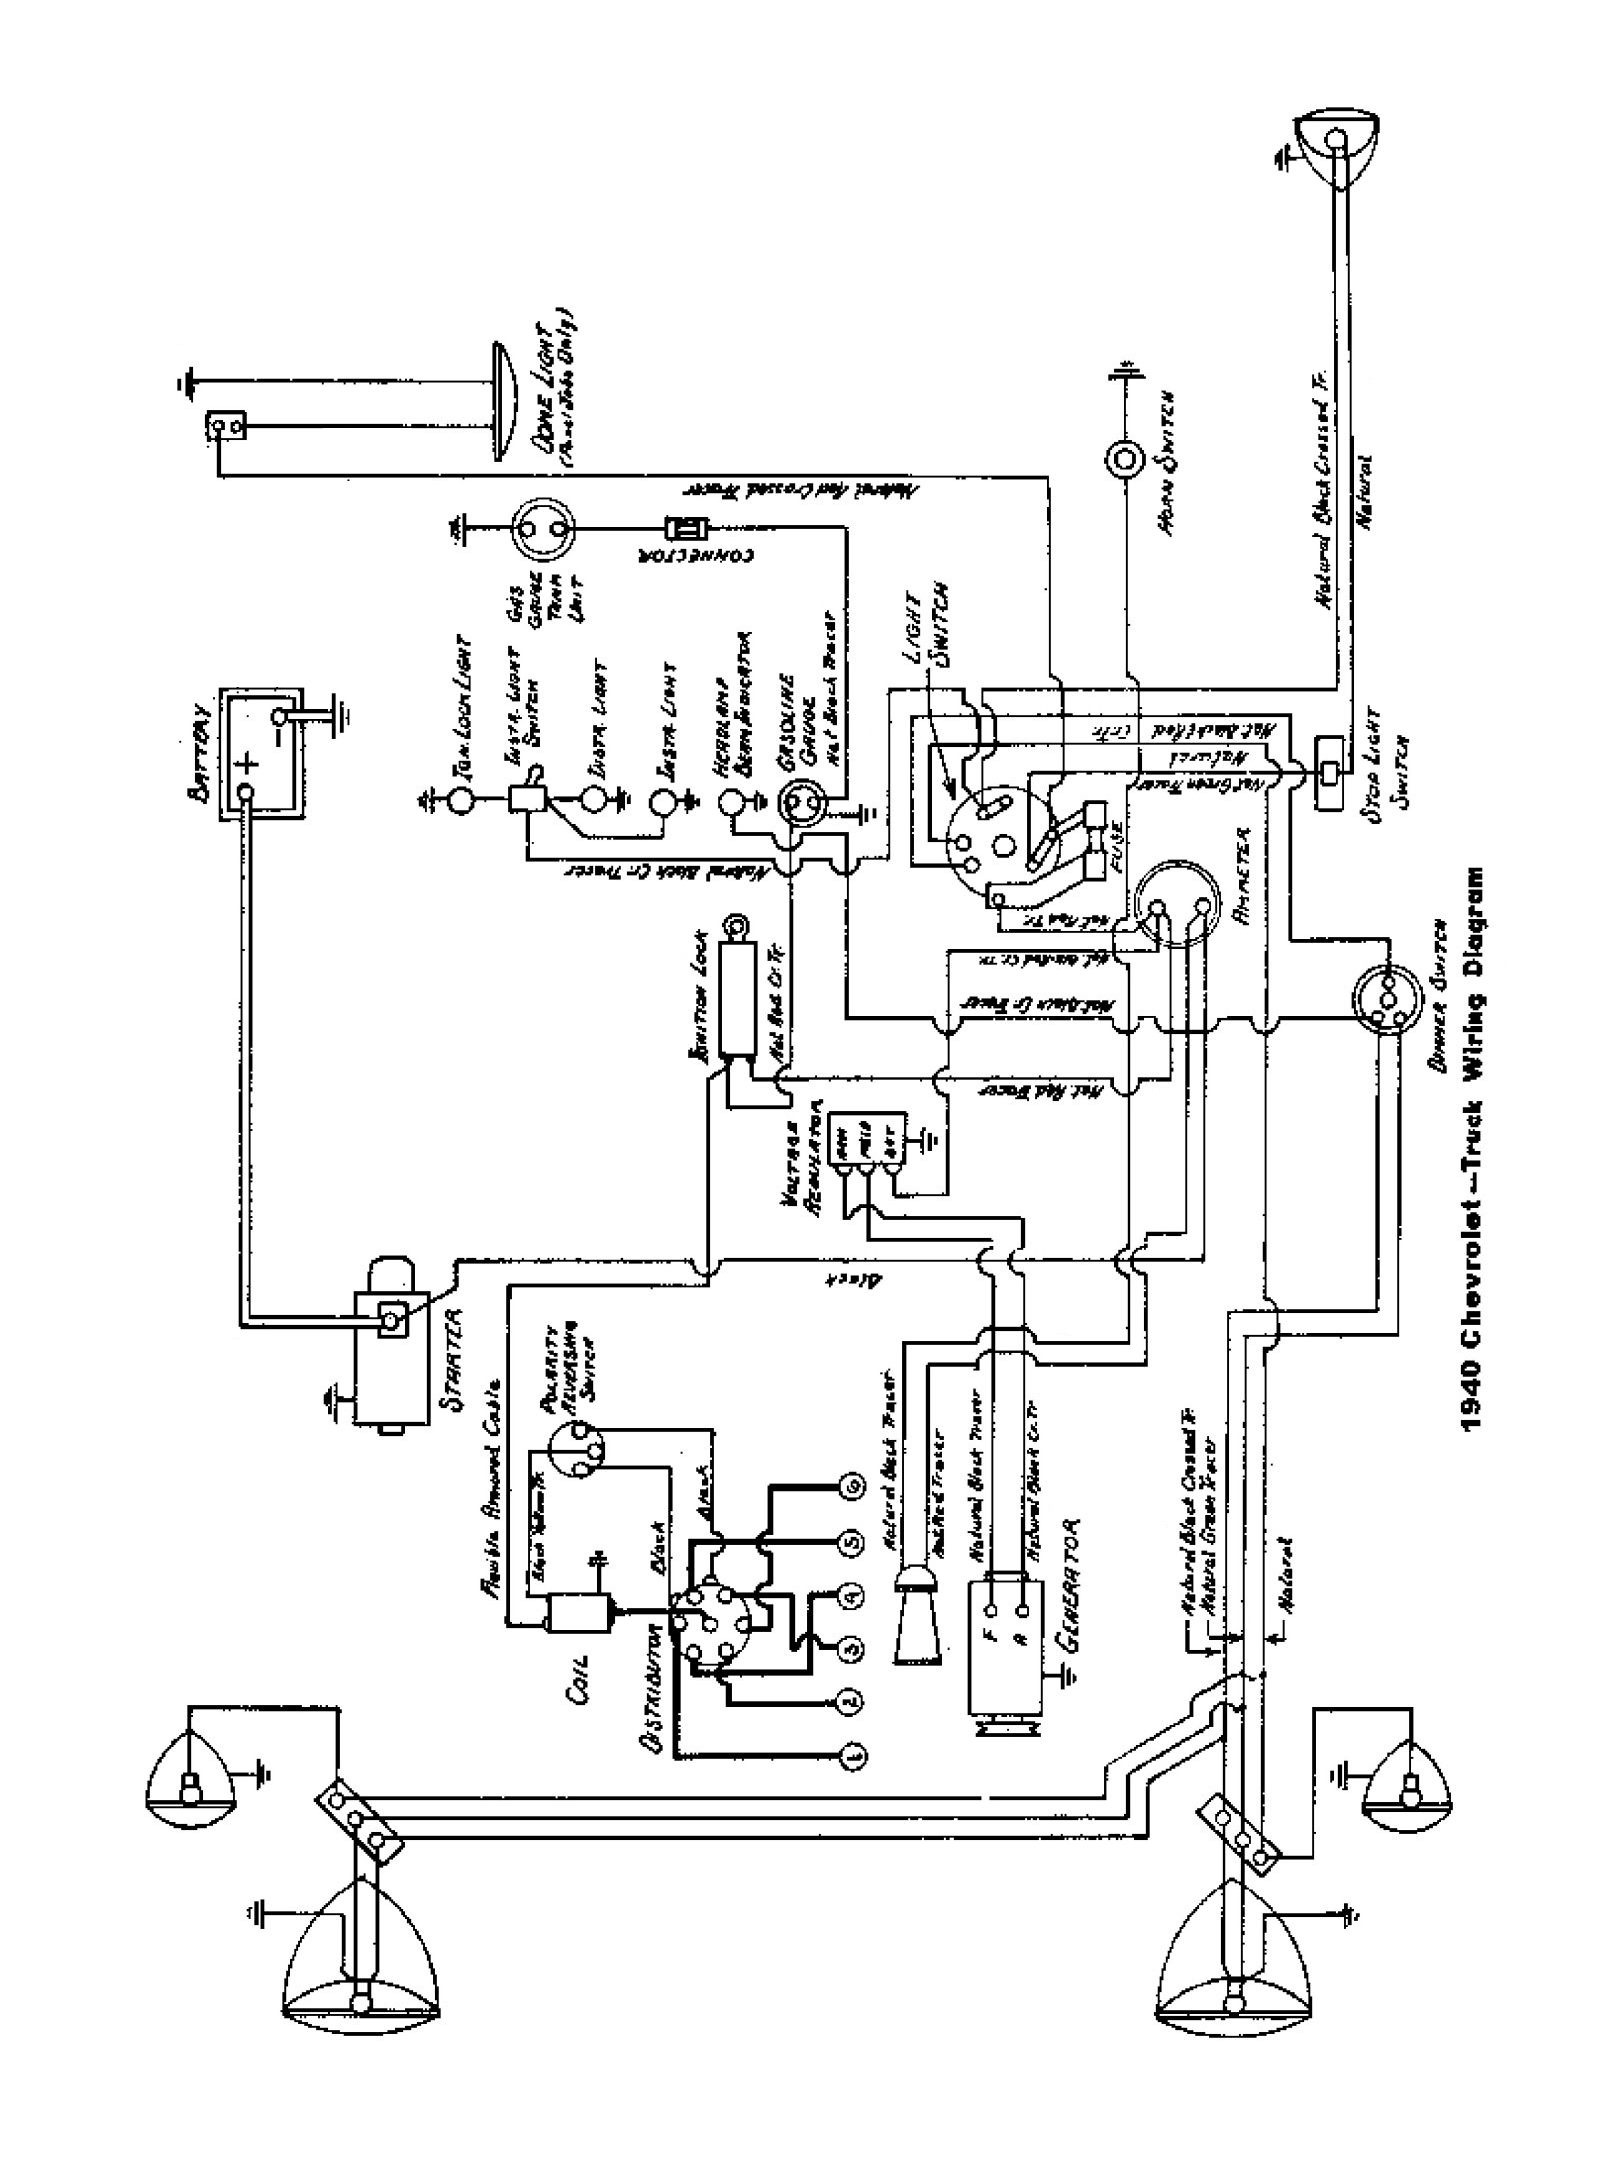 Chevy wiring schematics on chevy wiring diagrams chevy wiring diagram for trailer chevy express wiring schematics